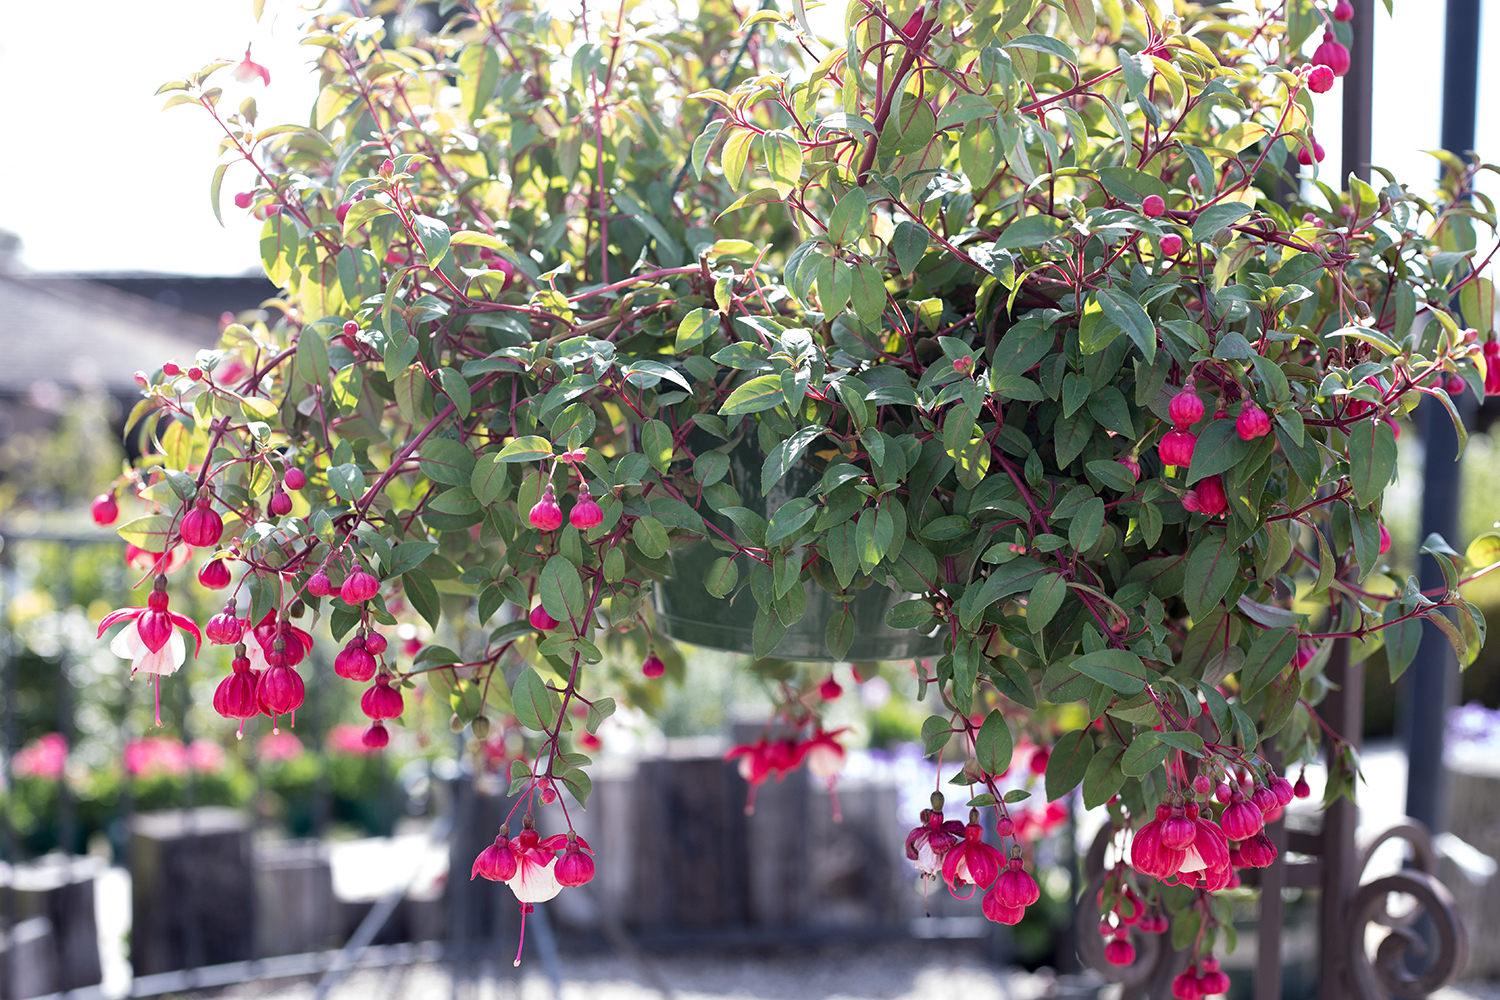 An image of pink Fuchsia in hanging baskets